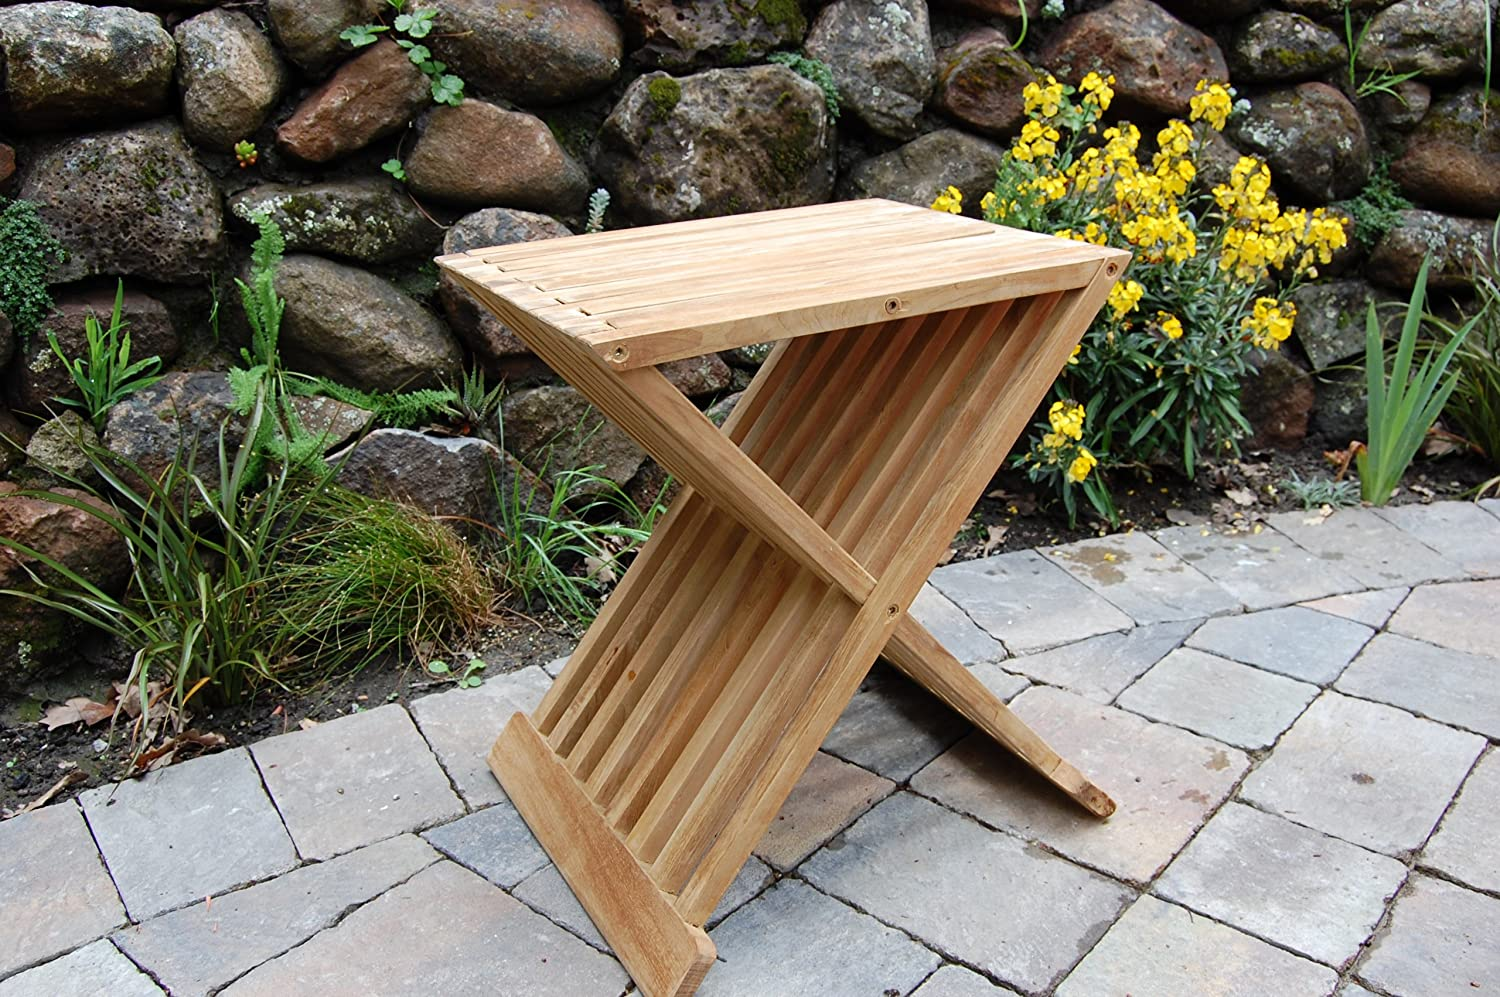 Amazon.com: Teak Wood Folding Shower Seat, Bench, Stool   Bath, Sauna  Seating: Home Improvement